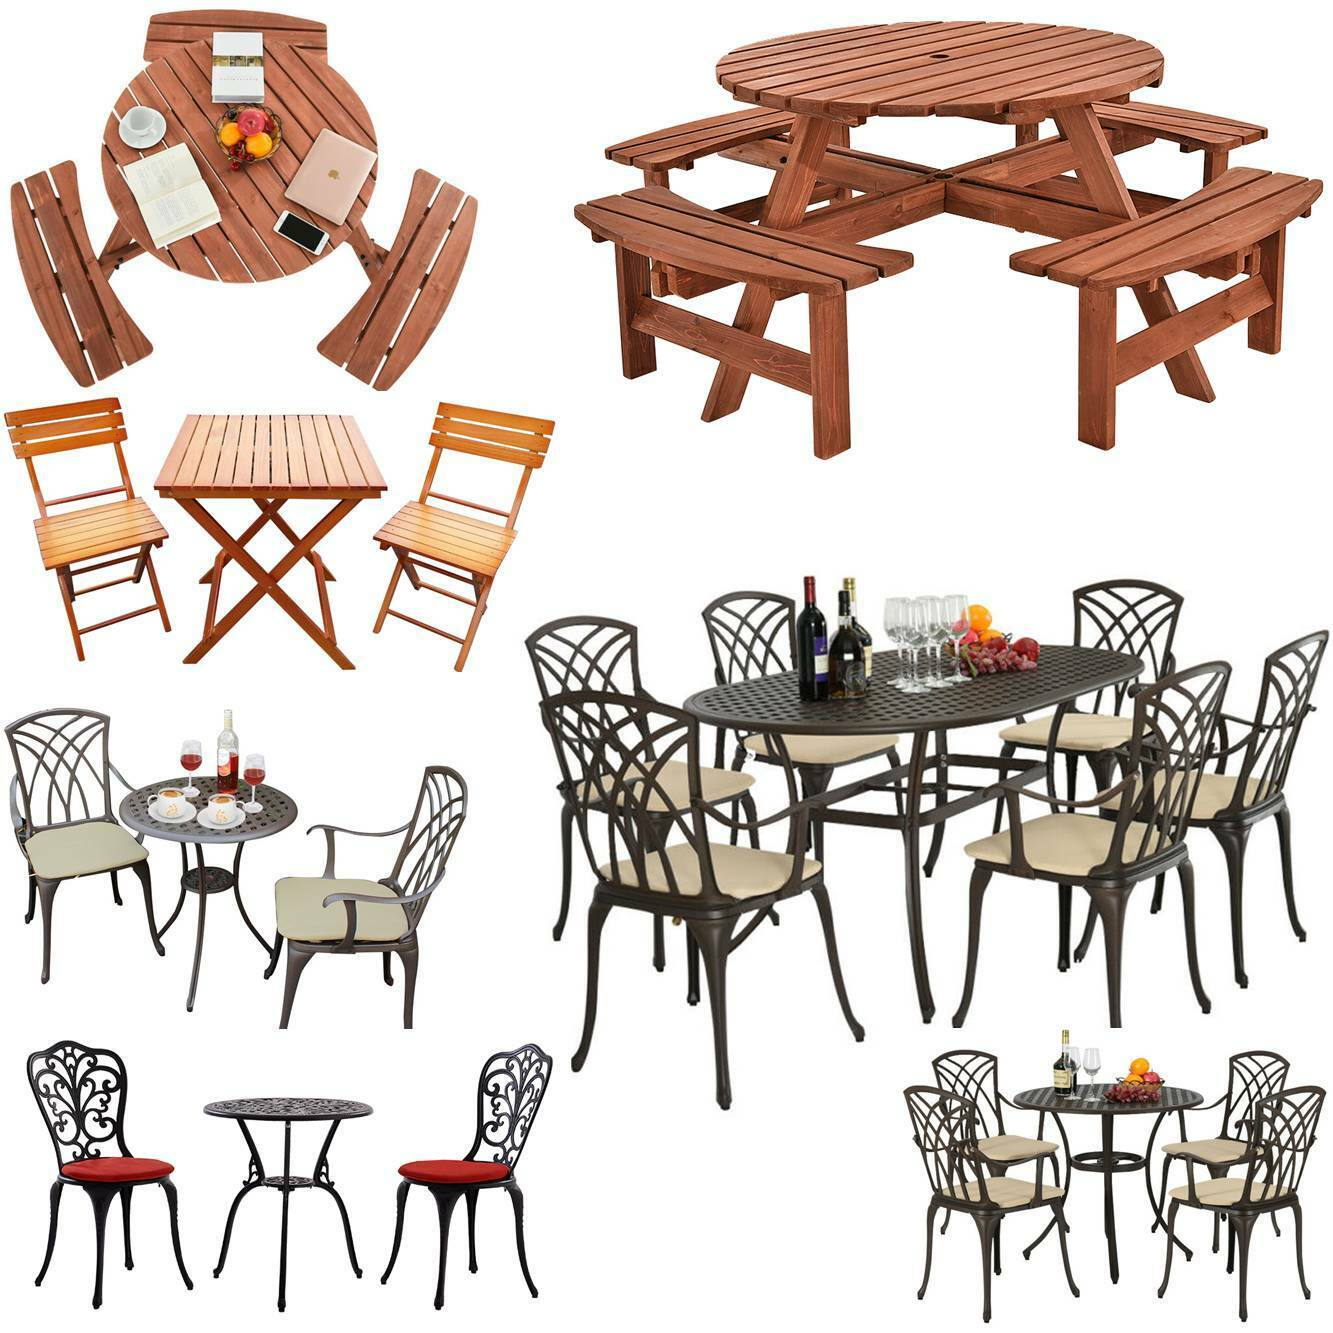 Garden Furniture - Garden Furniture Set Patio Wood Cast Aluminium Table and Chairs Bistro Outdoor